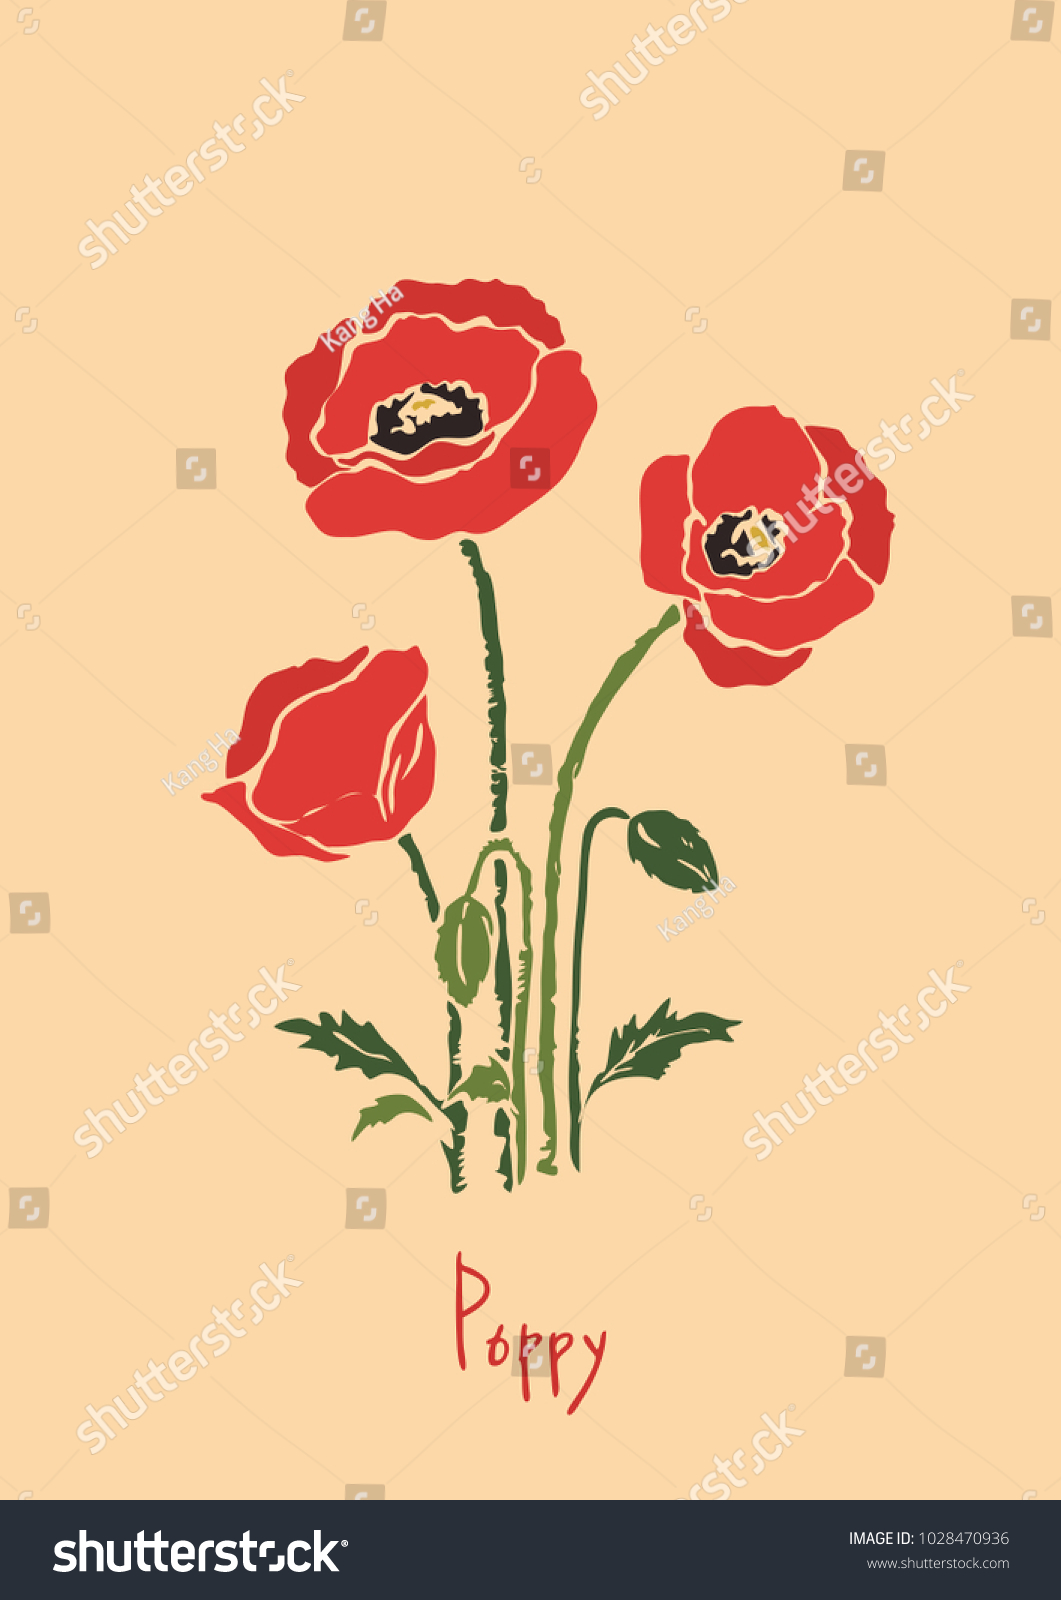 Vector Illustration Poppy Flowers Illustration Color Stock Vector